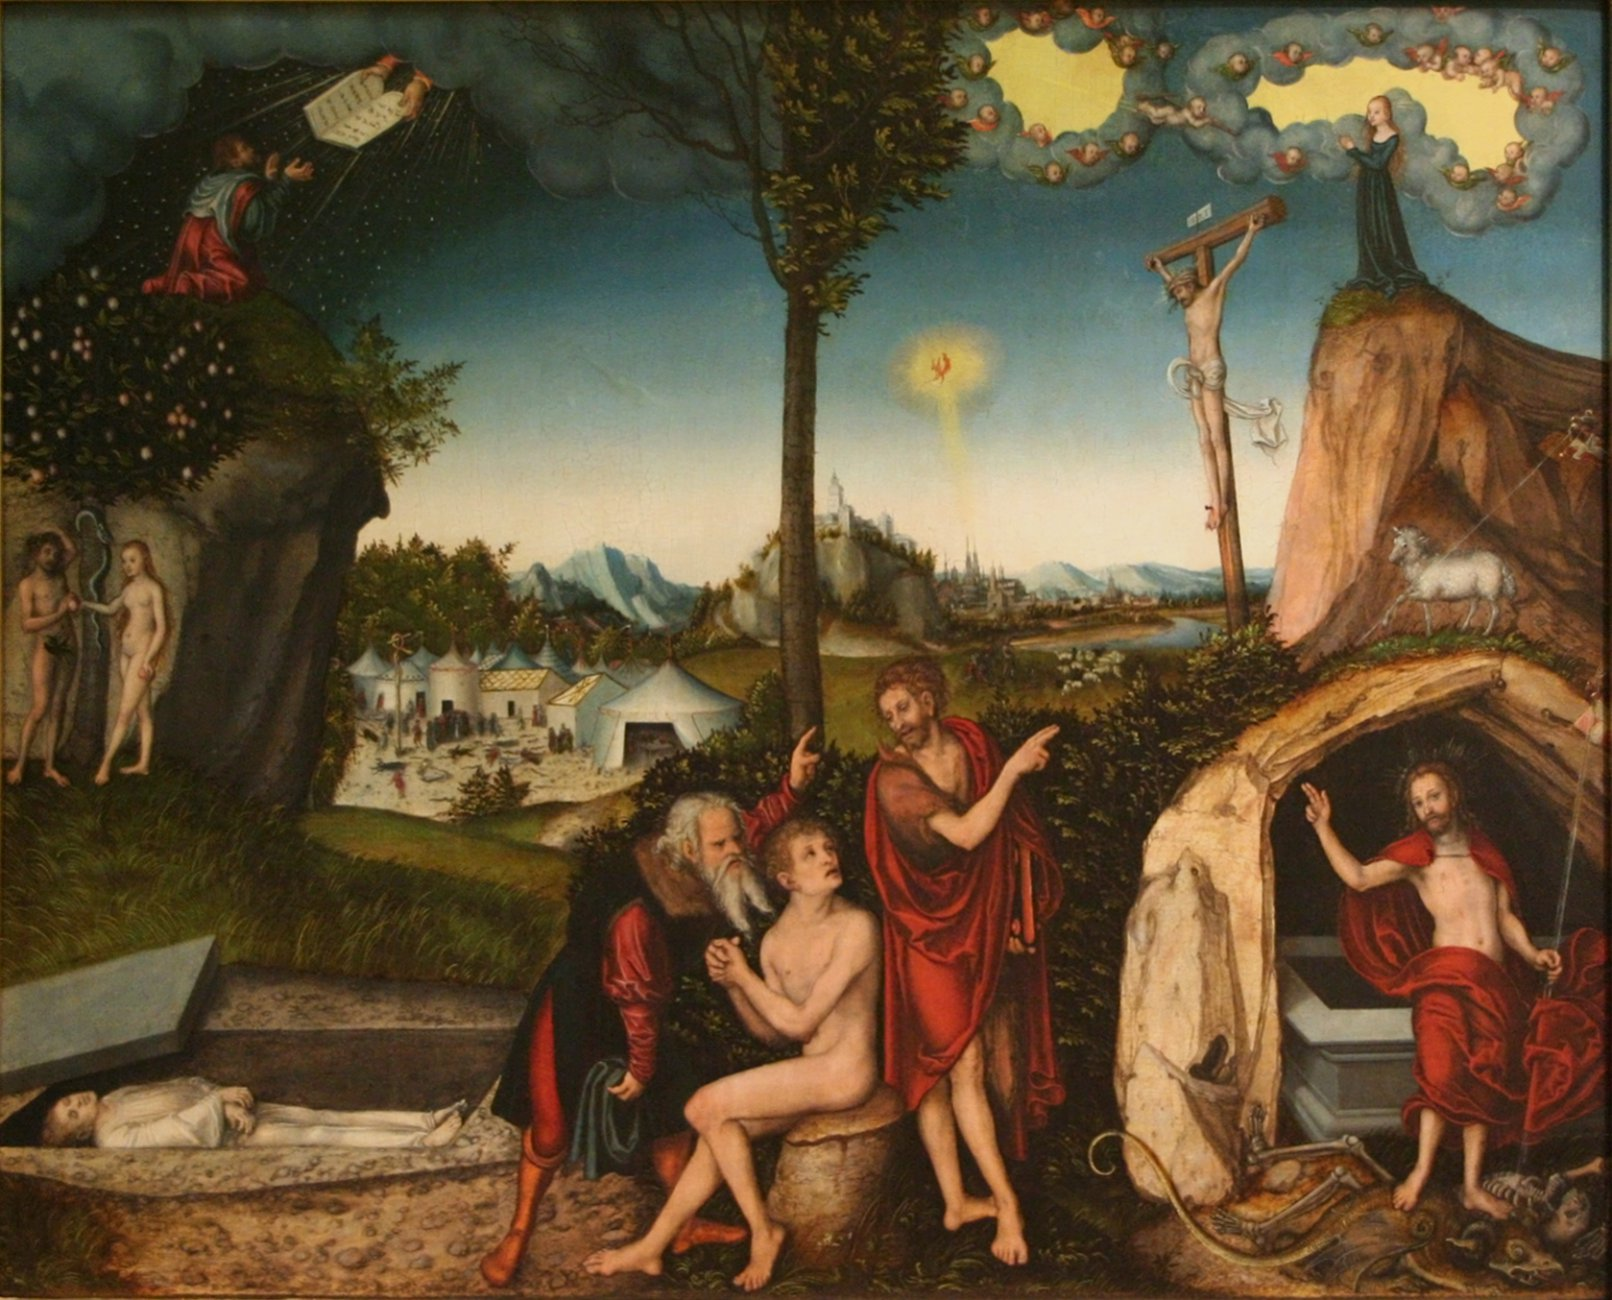 Lucas_Cranach_(I)_-_The_Law_and_the_Gospel.jpg